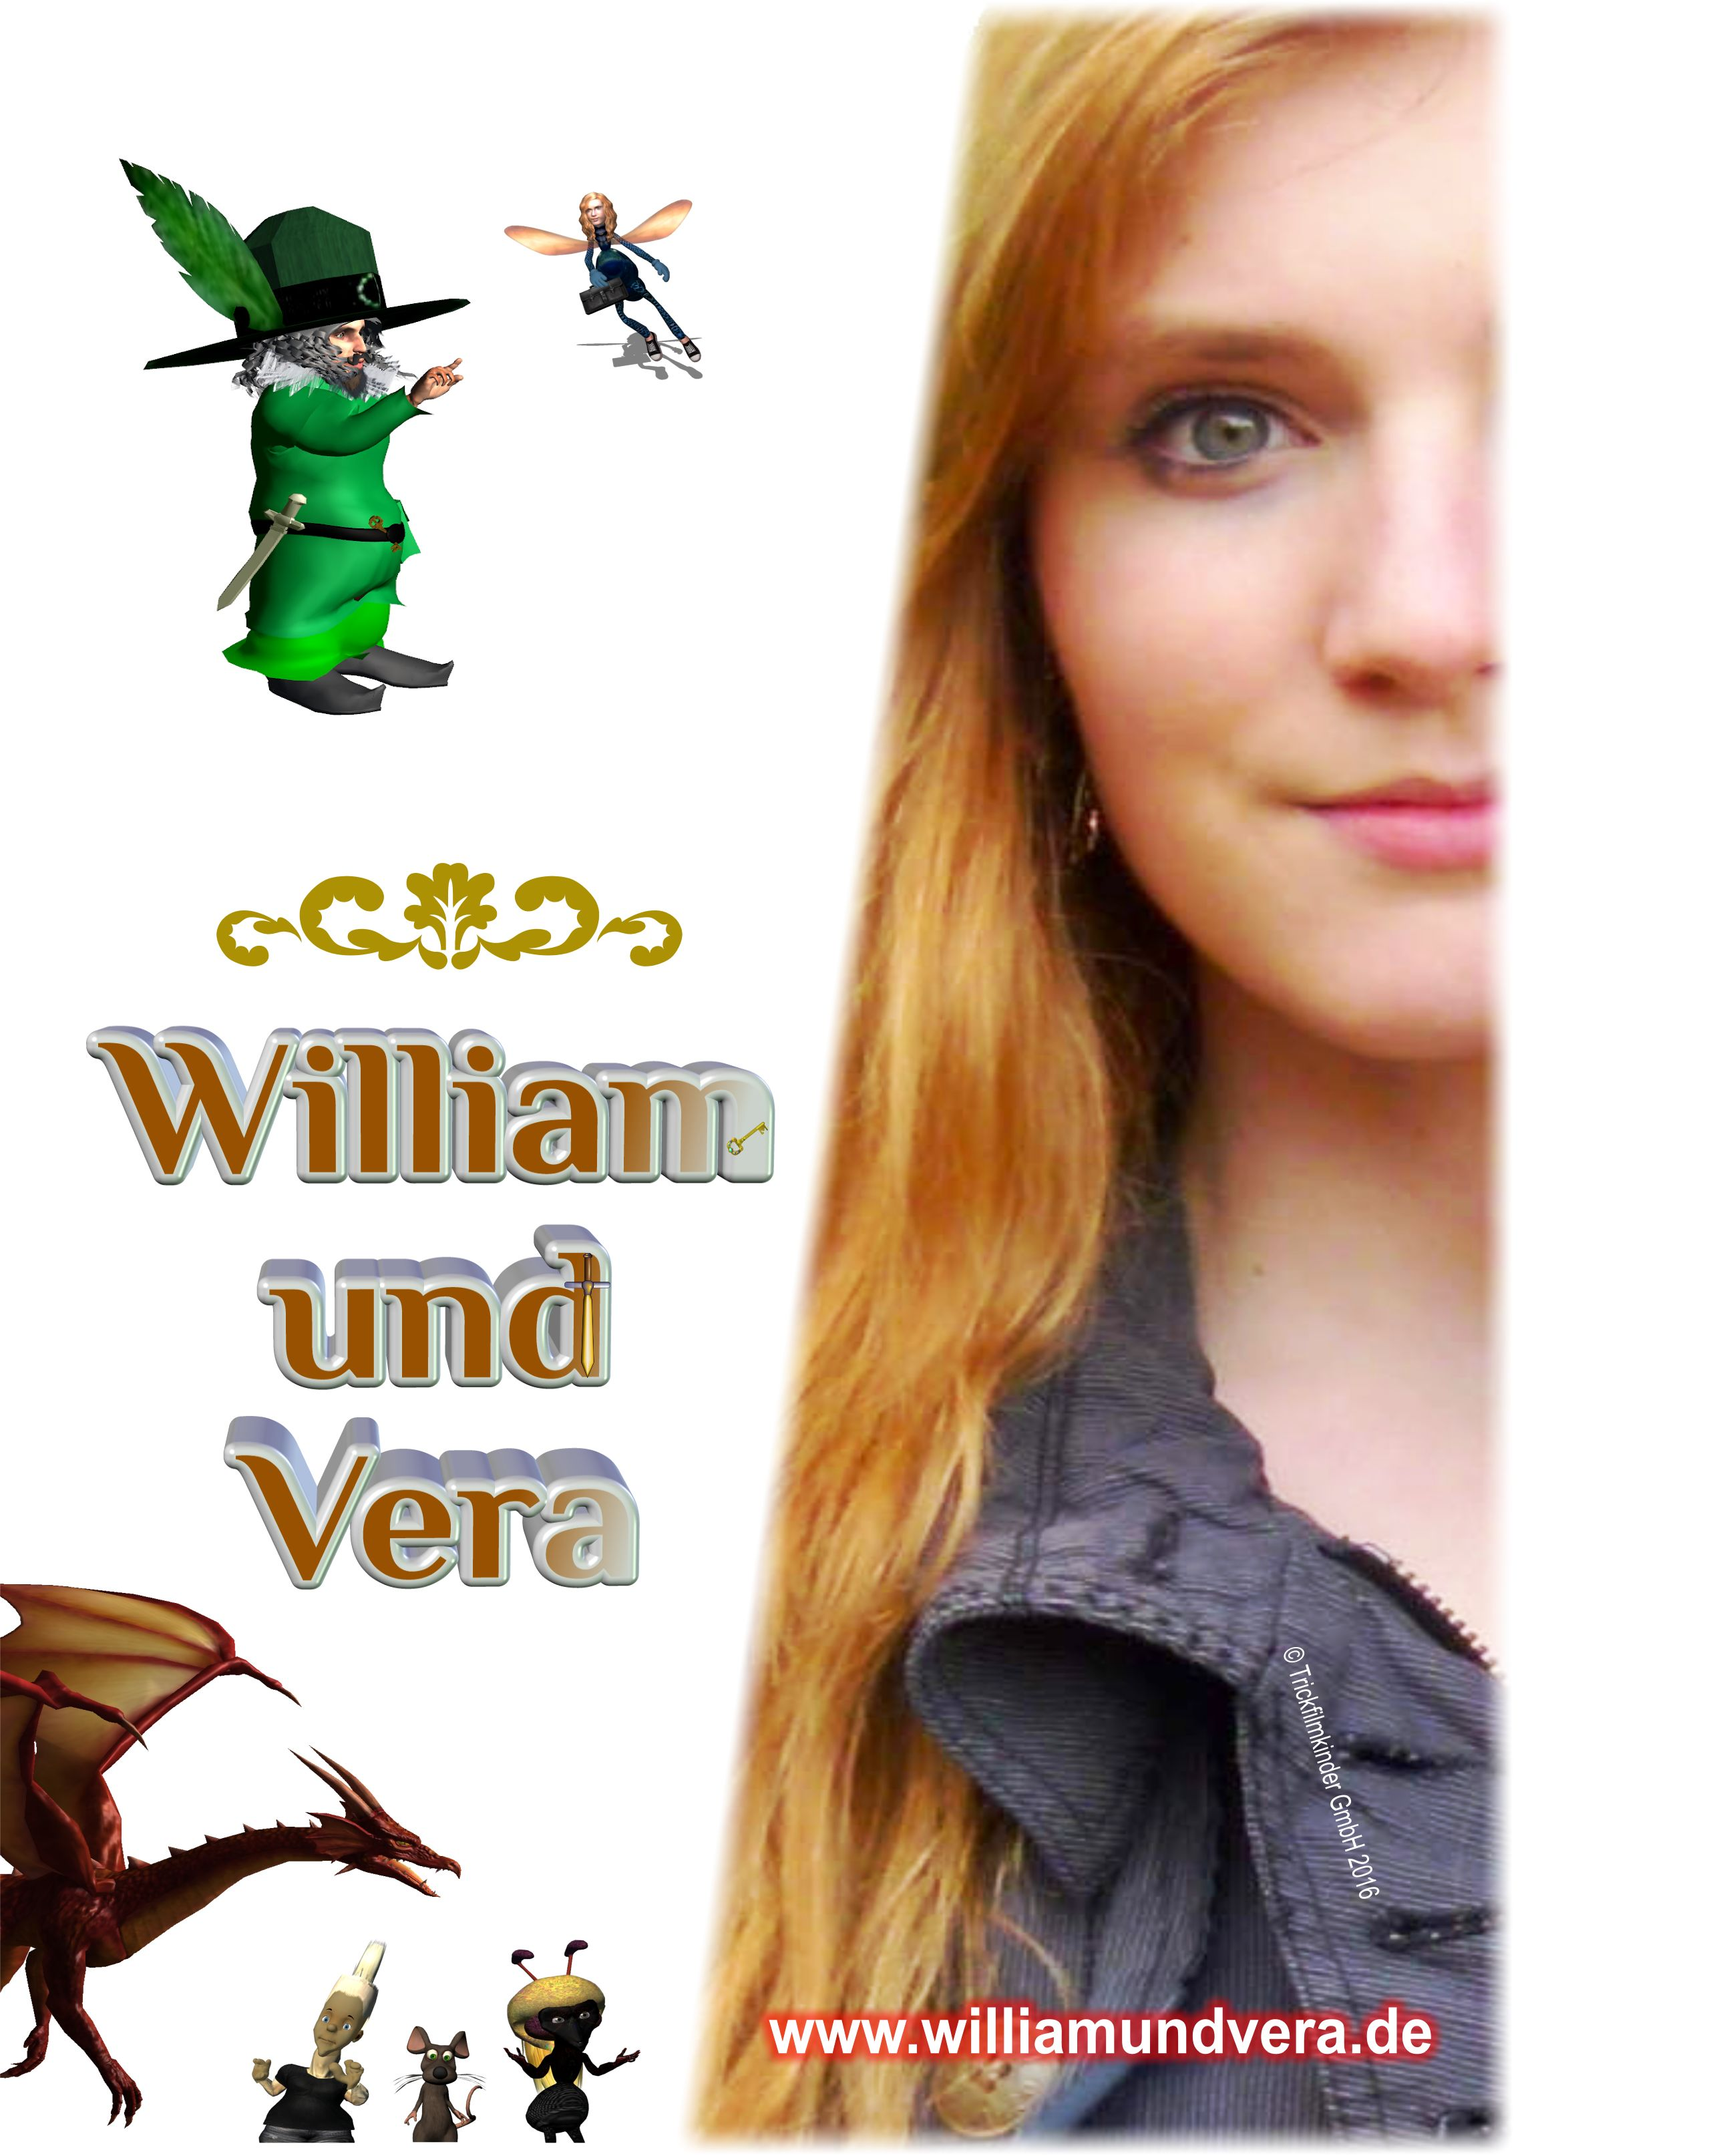 WILLIAM UND VERA